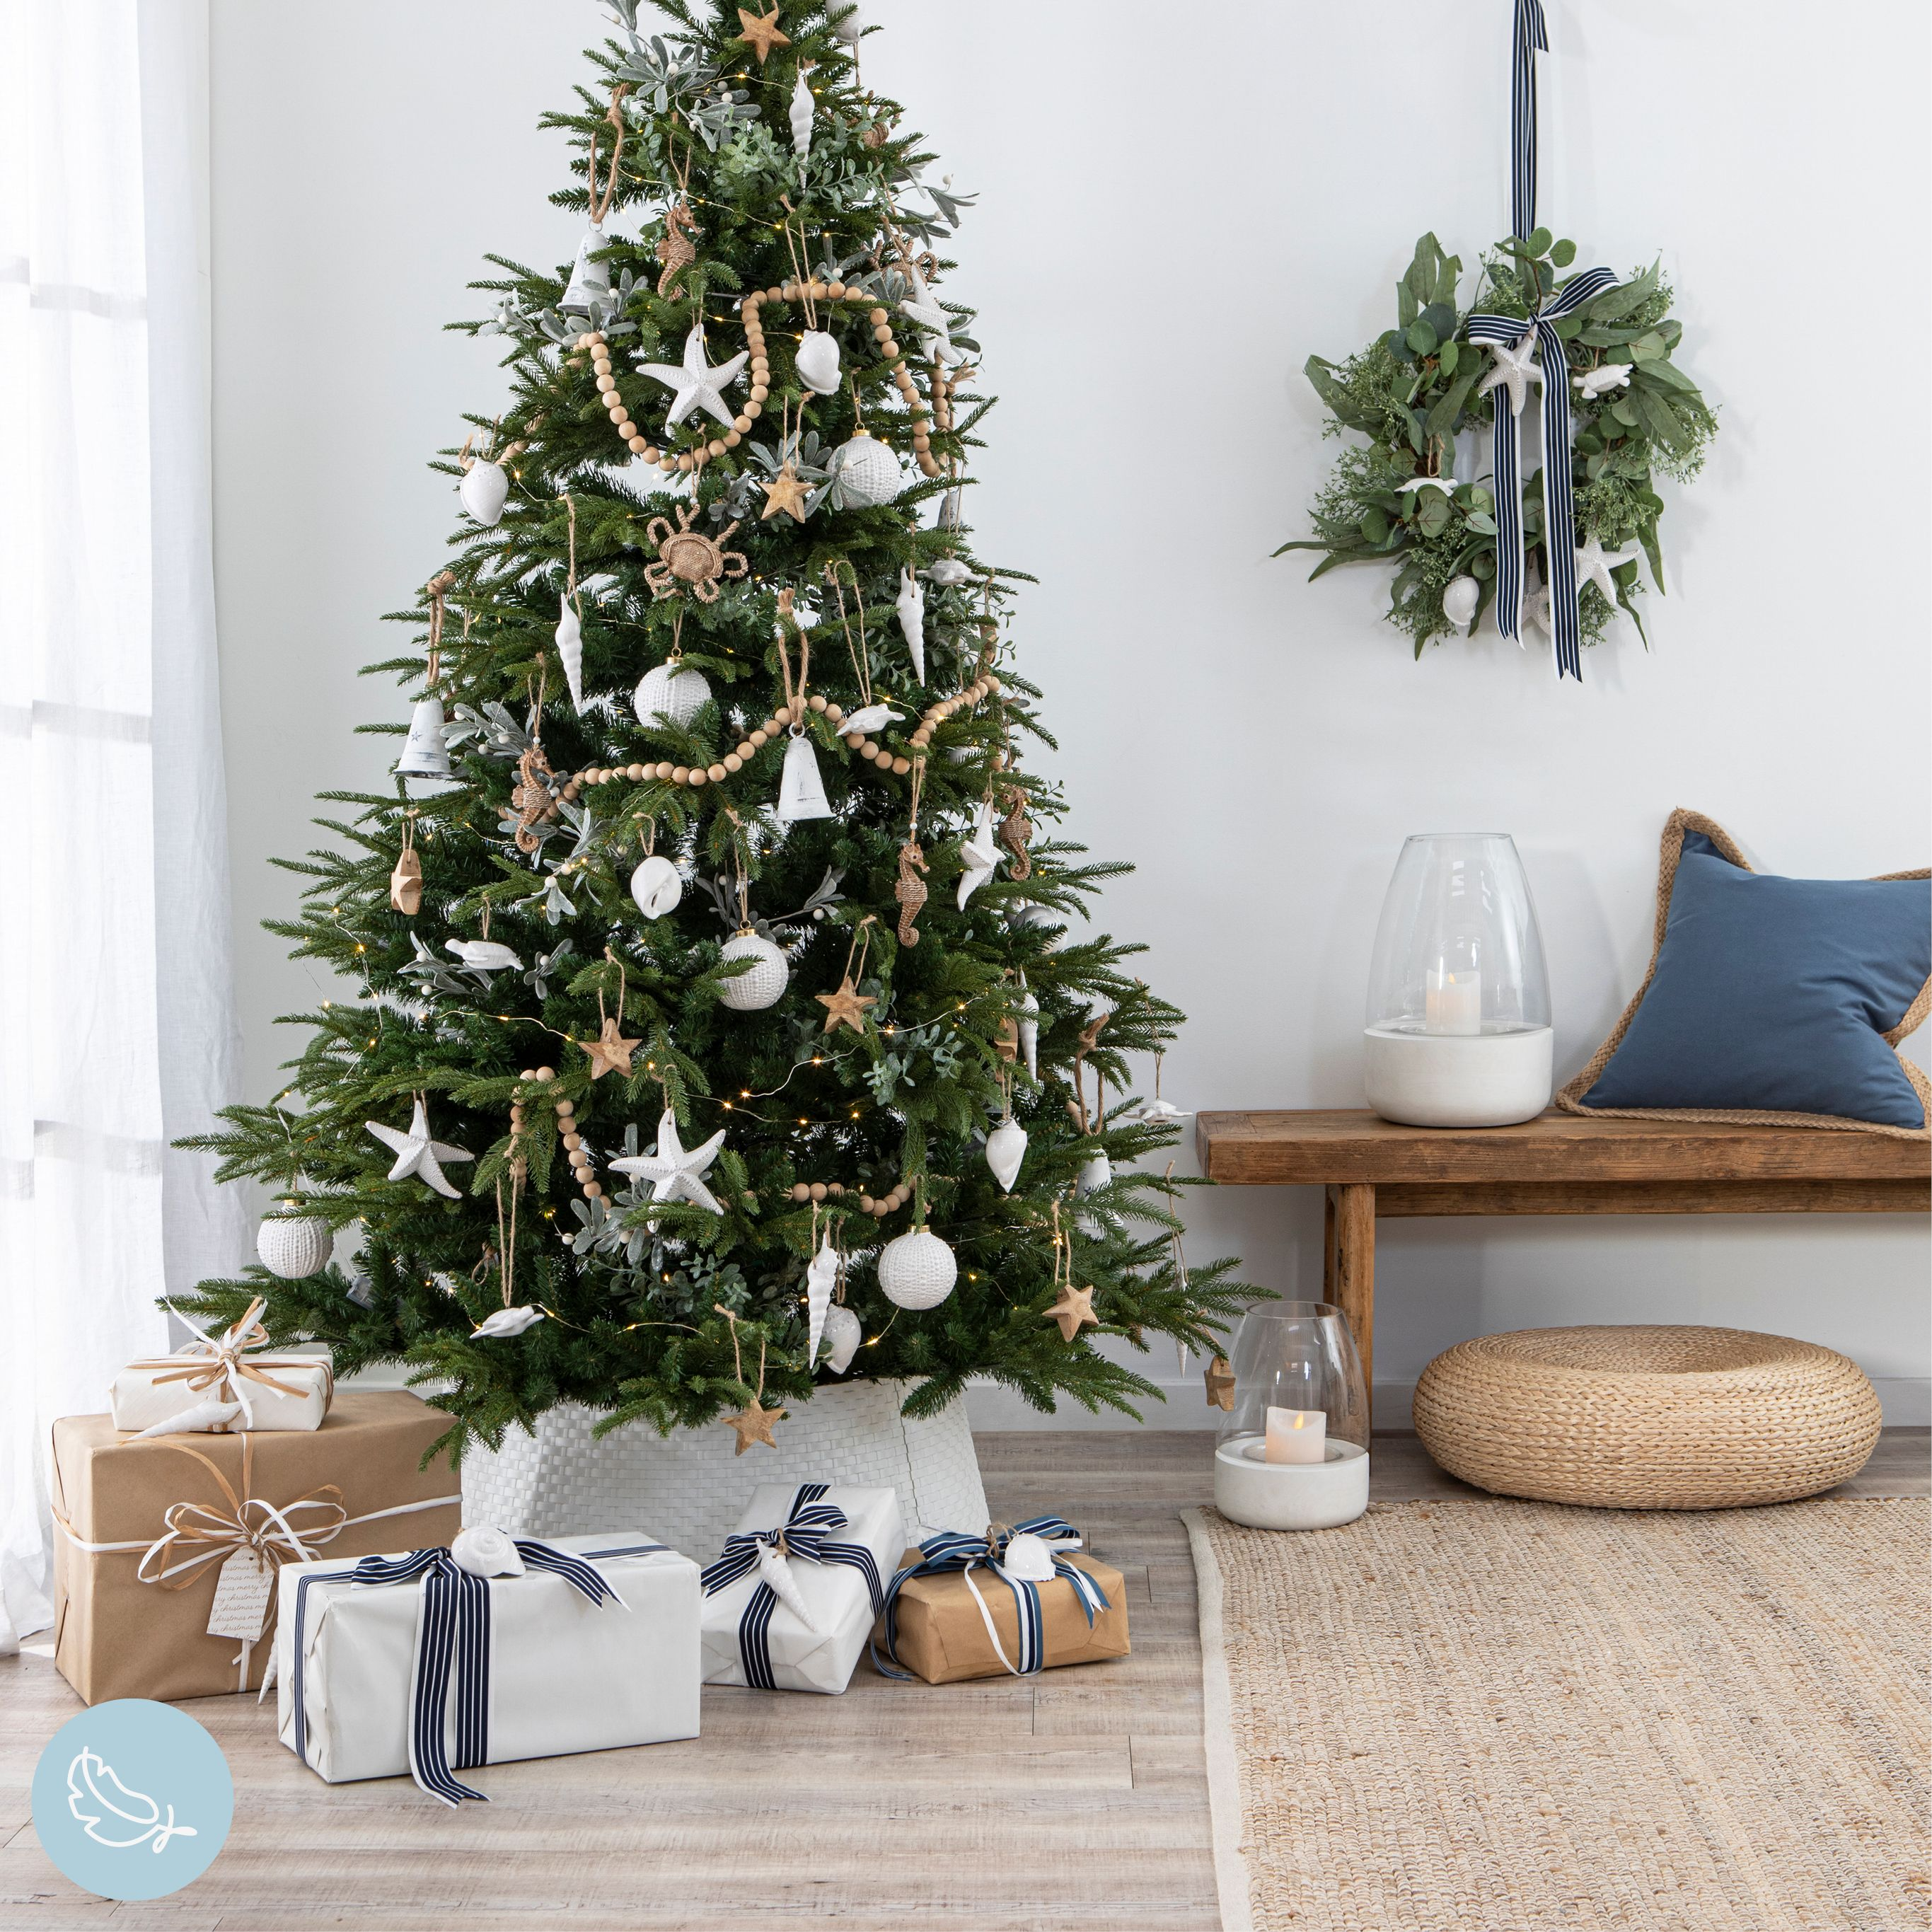 Whether you live beside the coast or love the seaside, adorn your Christmas tree this year with stunning coastal Christmas decorations! #christmas #xmas #gifts #christmasdecor #xmasdecor #christmasdinner #christmastable #christmashome #christmasstyle #holidaydecor #holidaygifts #holiday #christmasshoppingonline #holidayparty #christmasdecorations